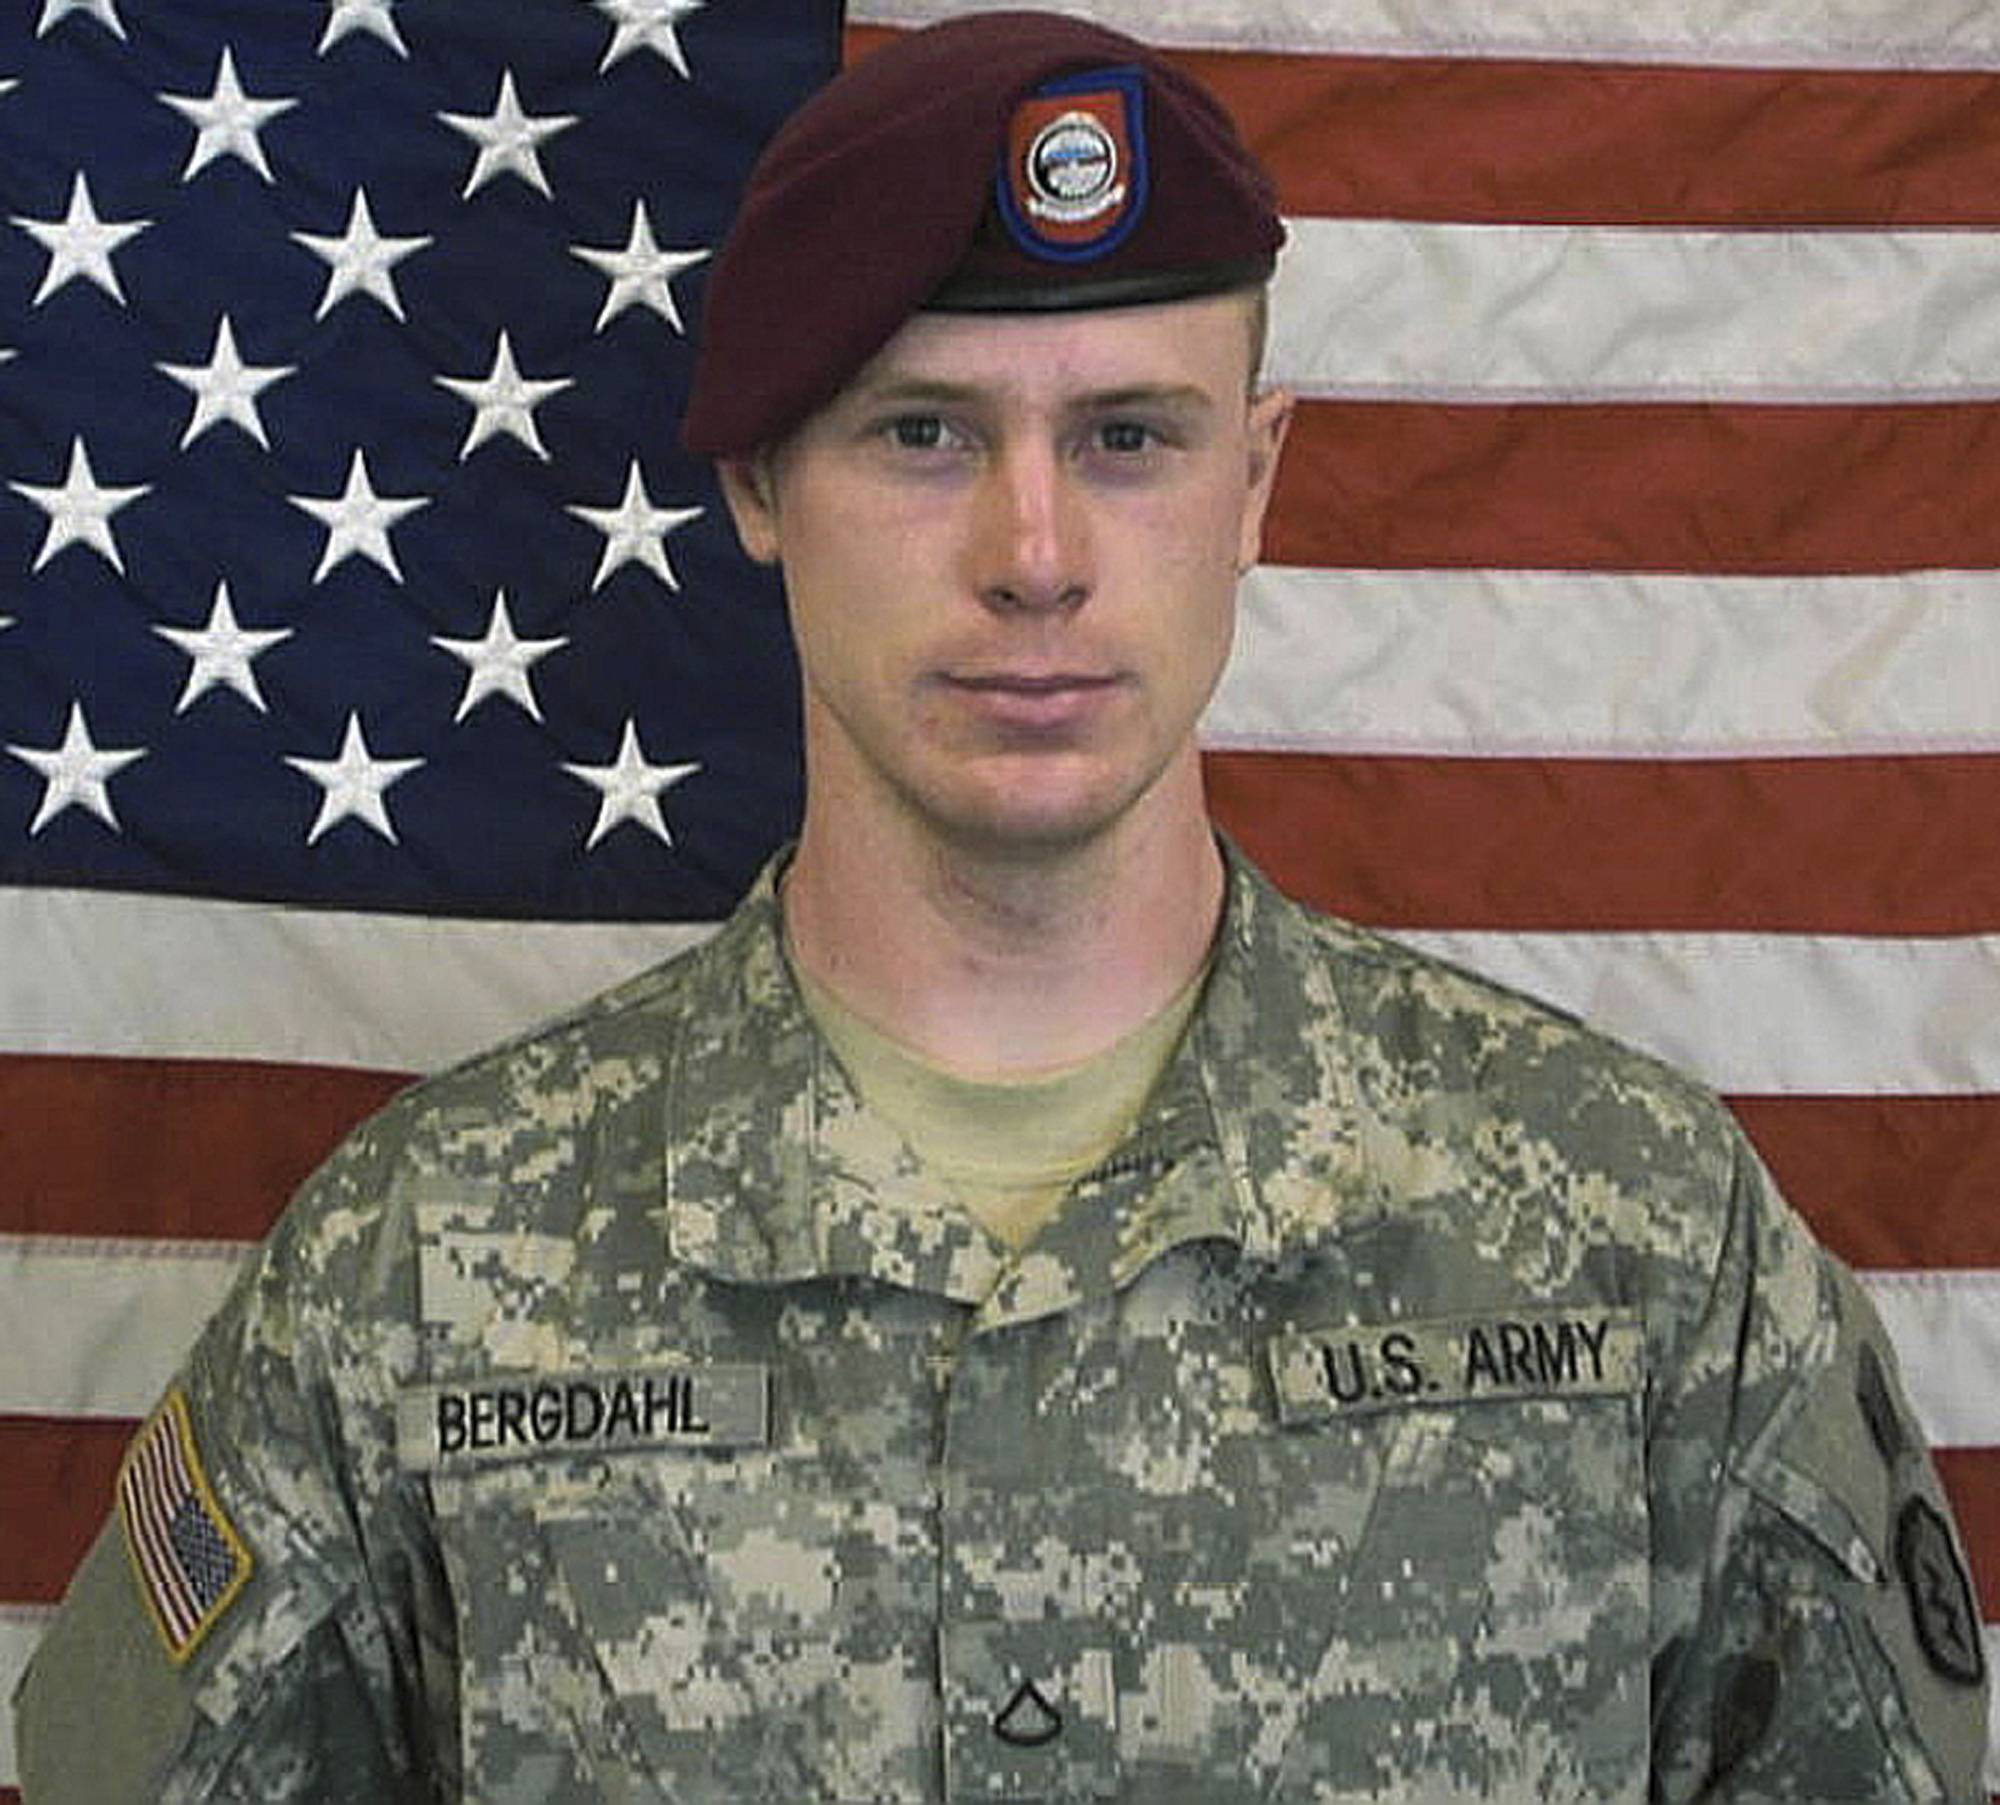 Questions loom over Bergdahl-Taliban swap